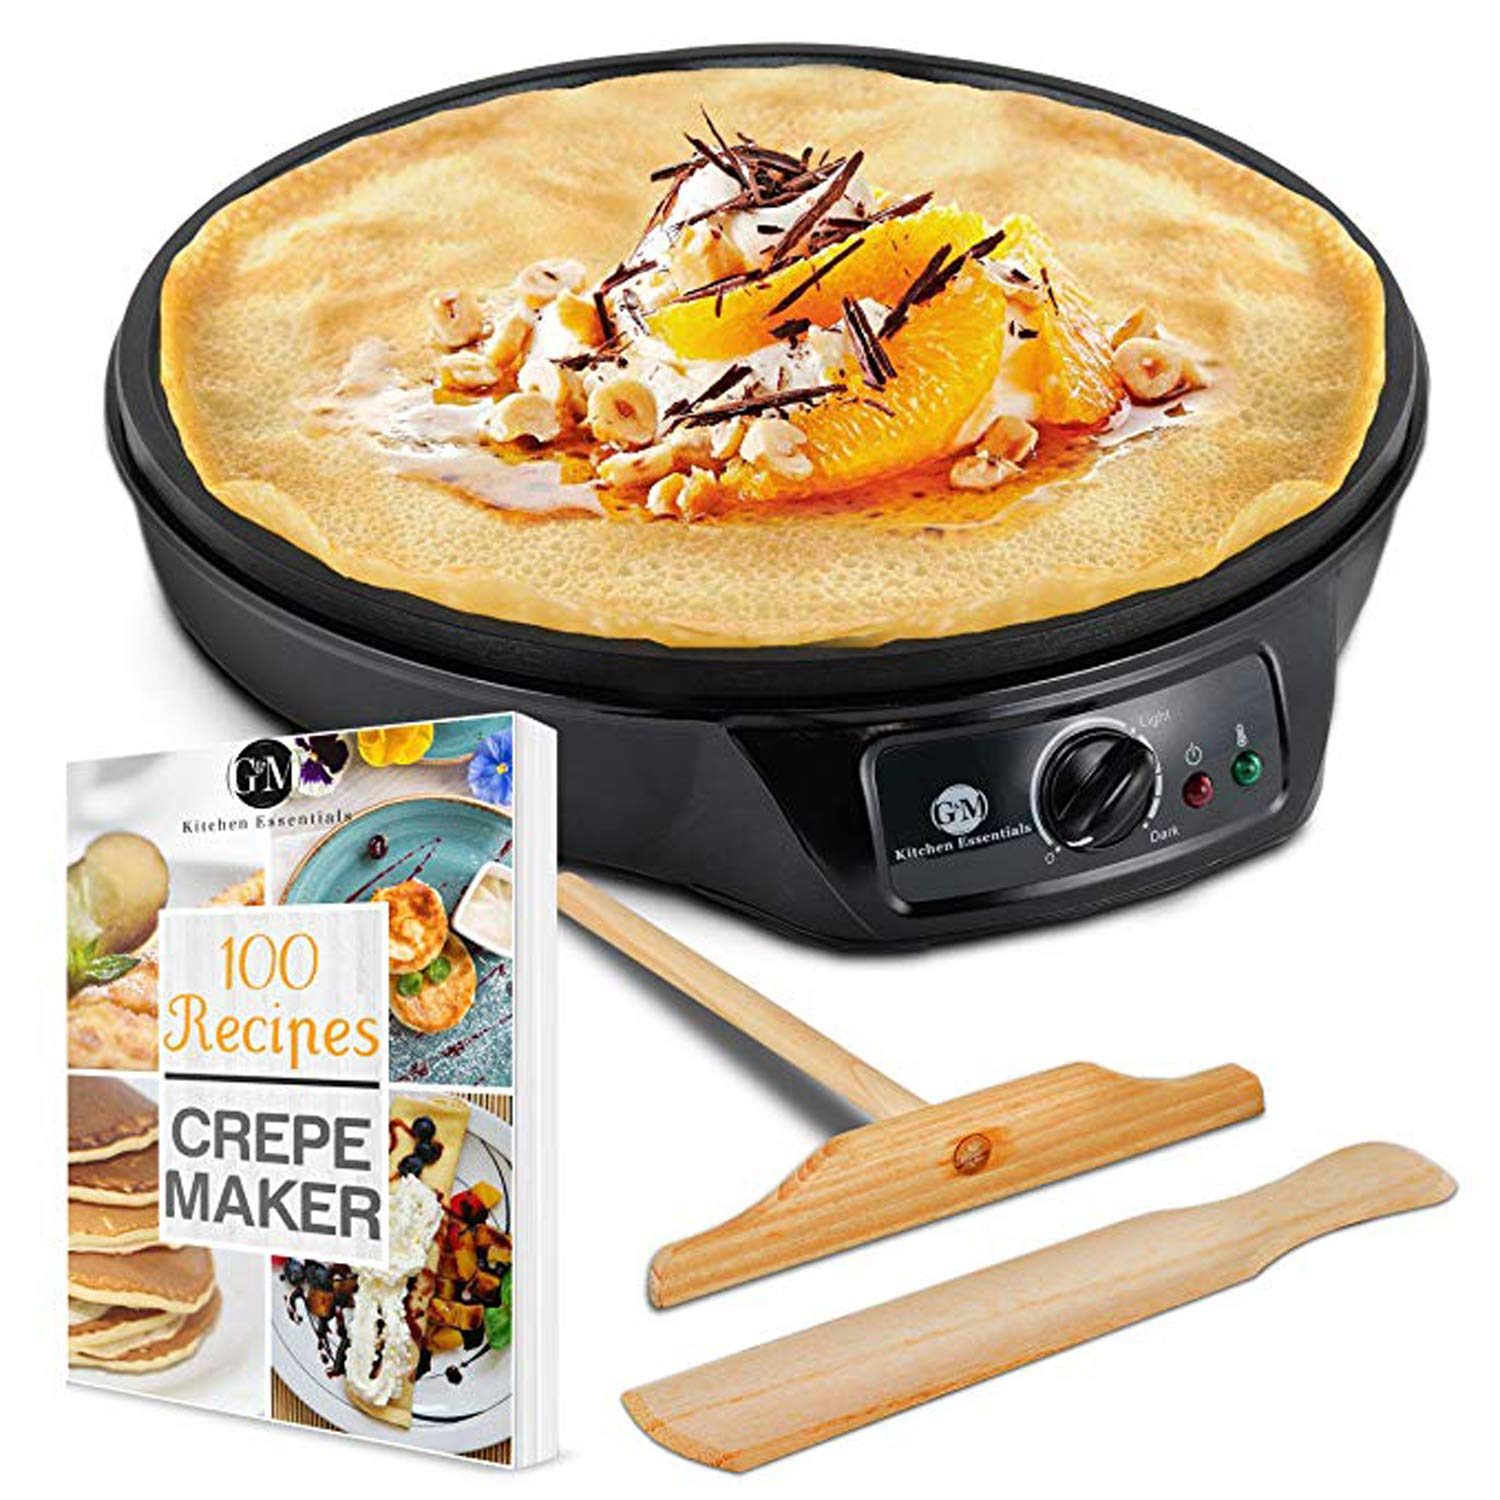 Crepe Maker Machine Pancake Griddle Nonstick 12 Electric Griddle Pancake Maker, Batter Spreader, Wooden Spatula Crepe Pan for Roti, Tortilla, Blintzes Portable, Compact, Easy Clean